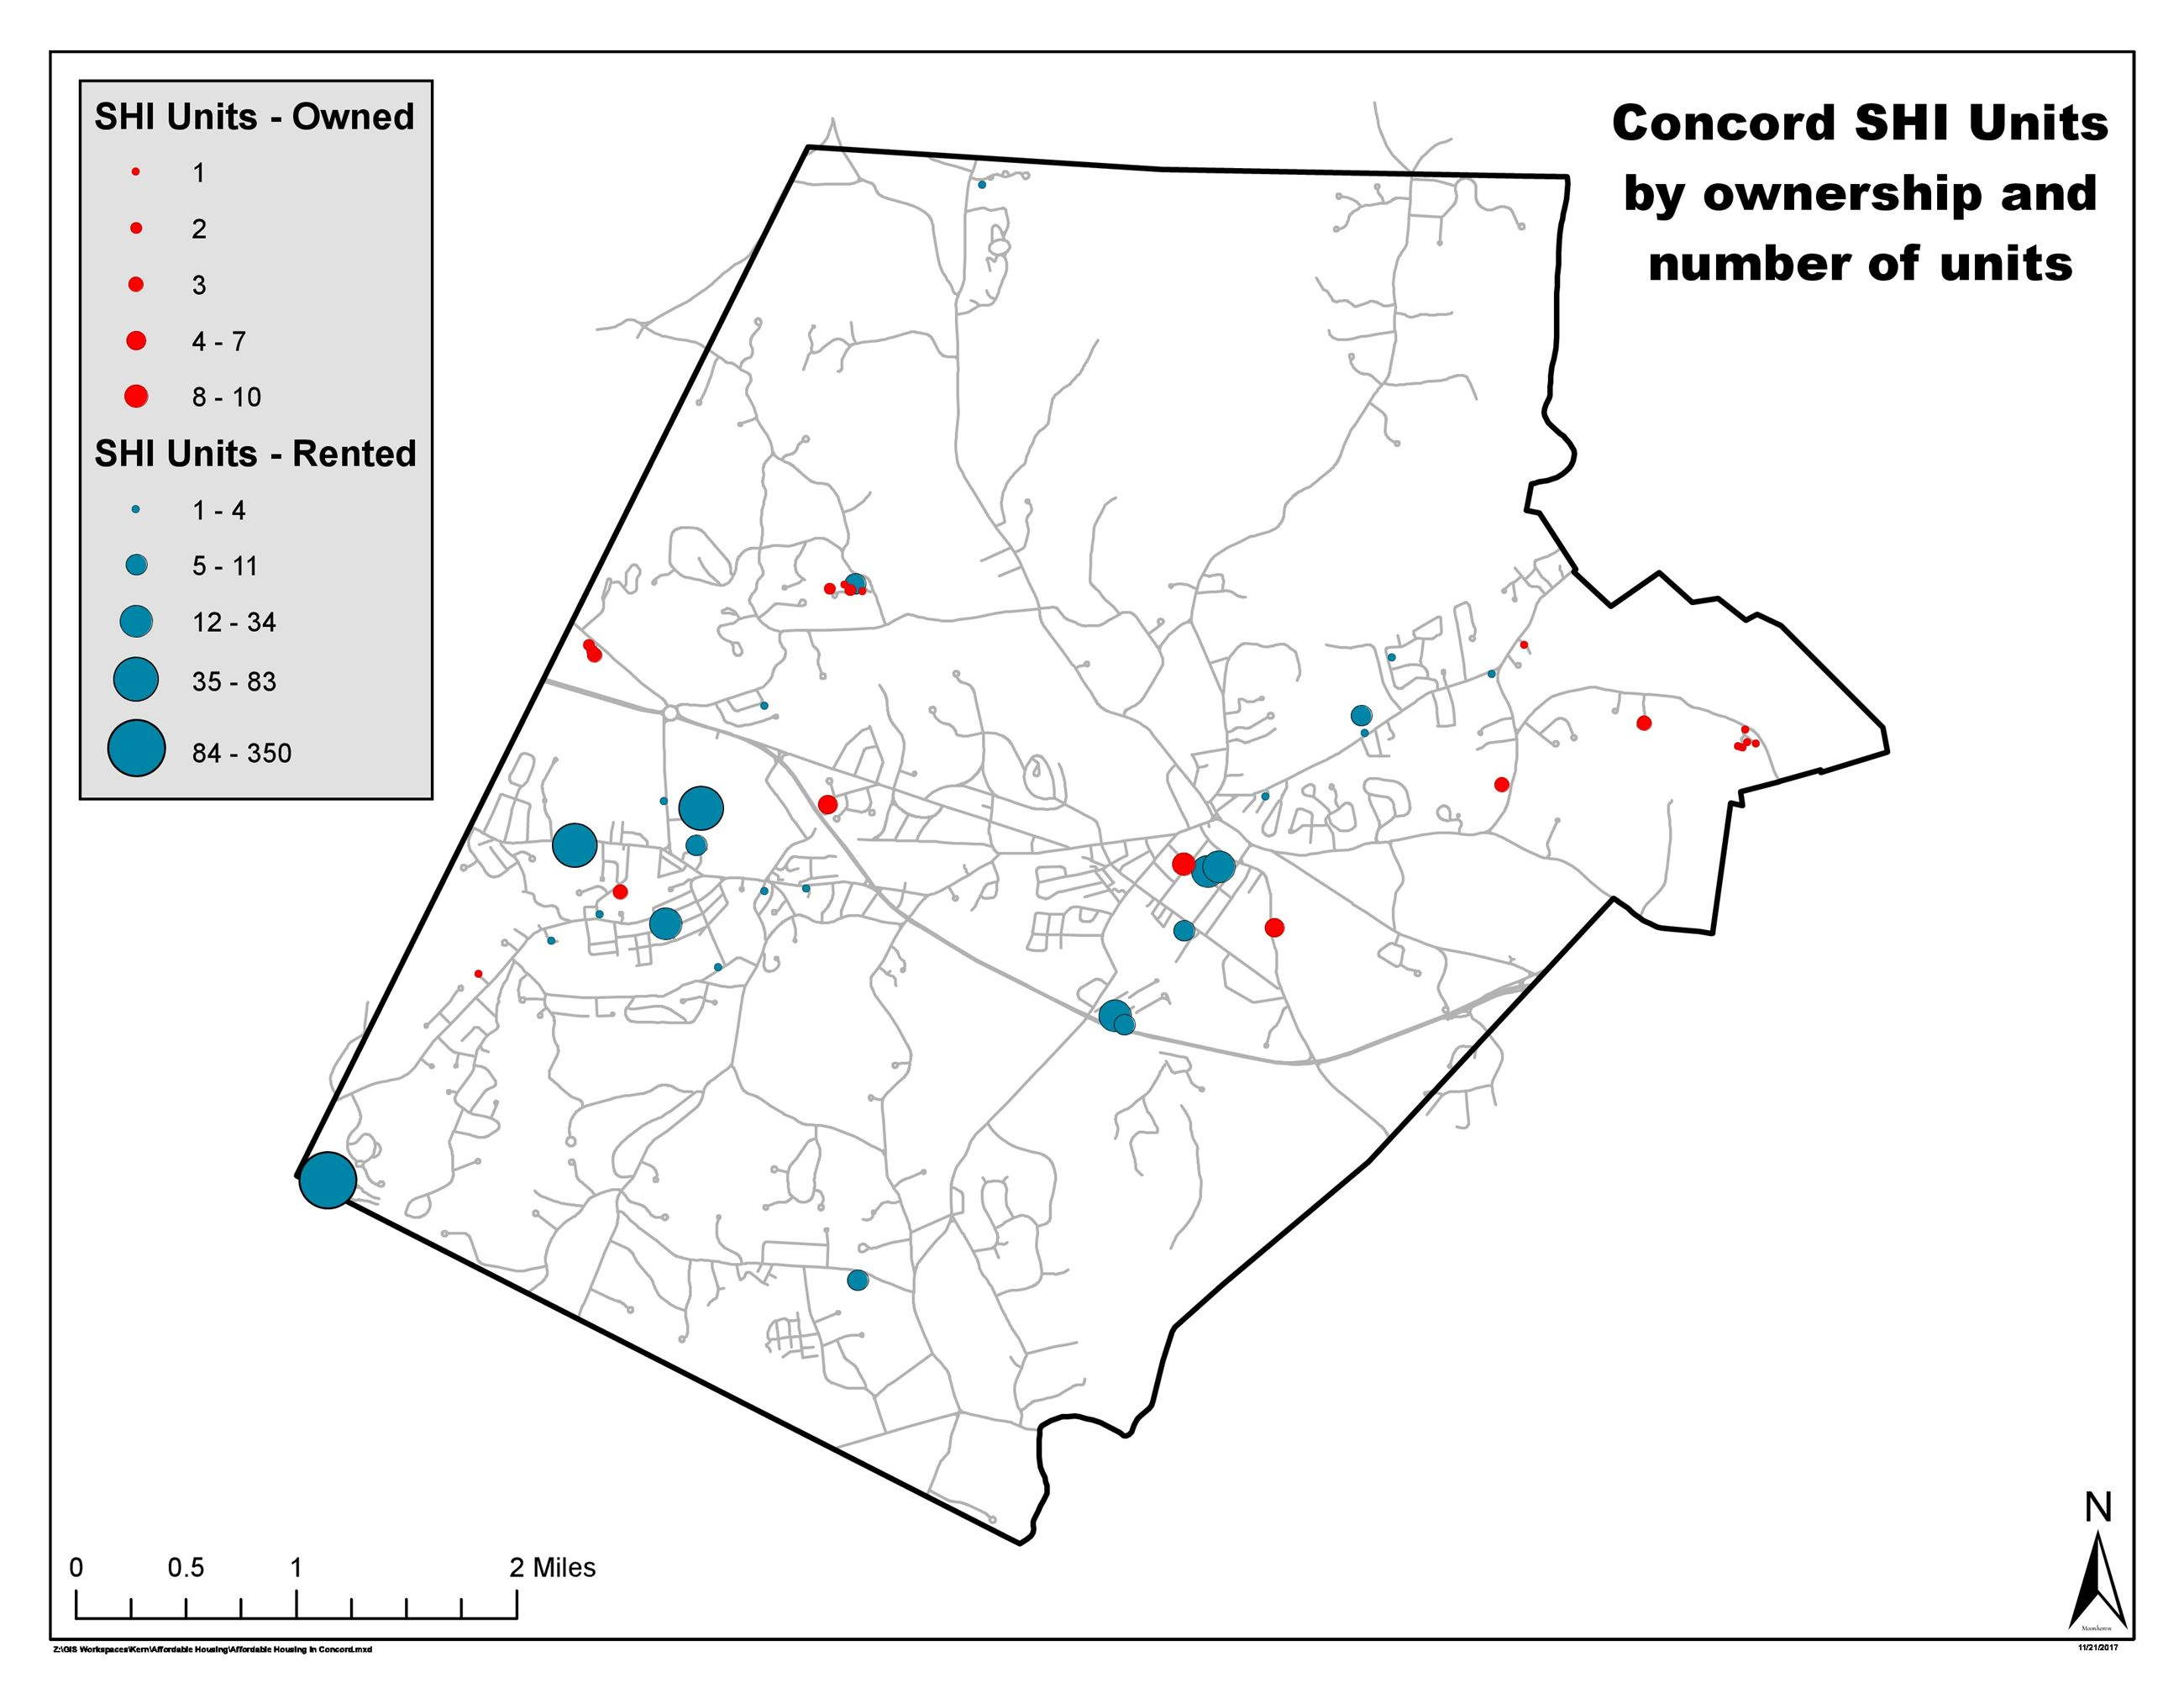 Concord Map of Affordable Housing 11.27.17